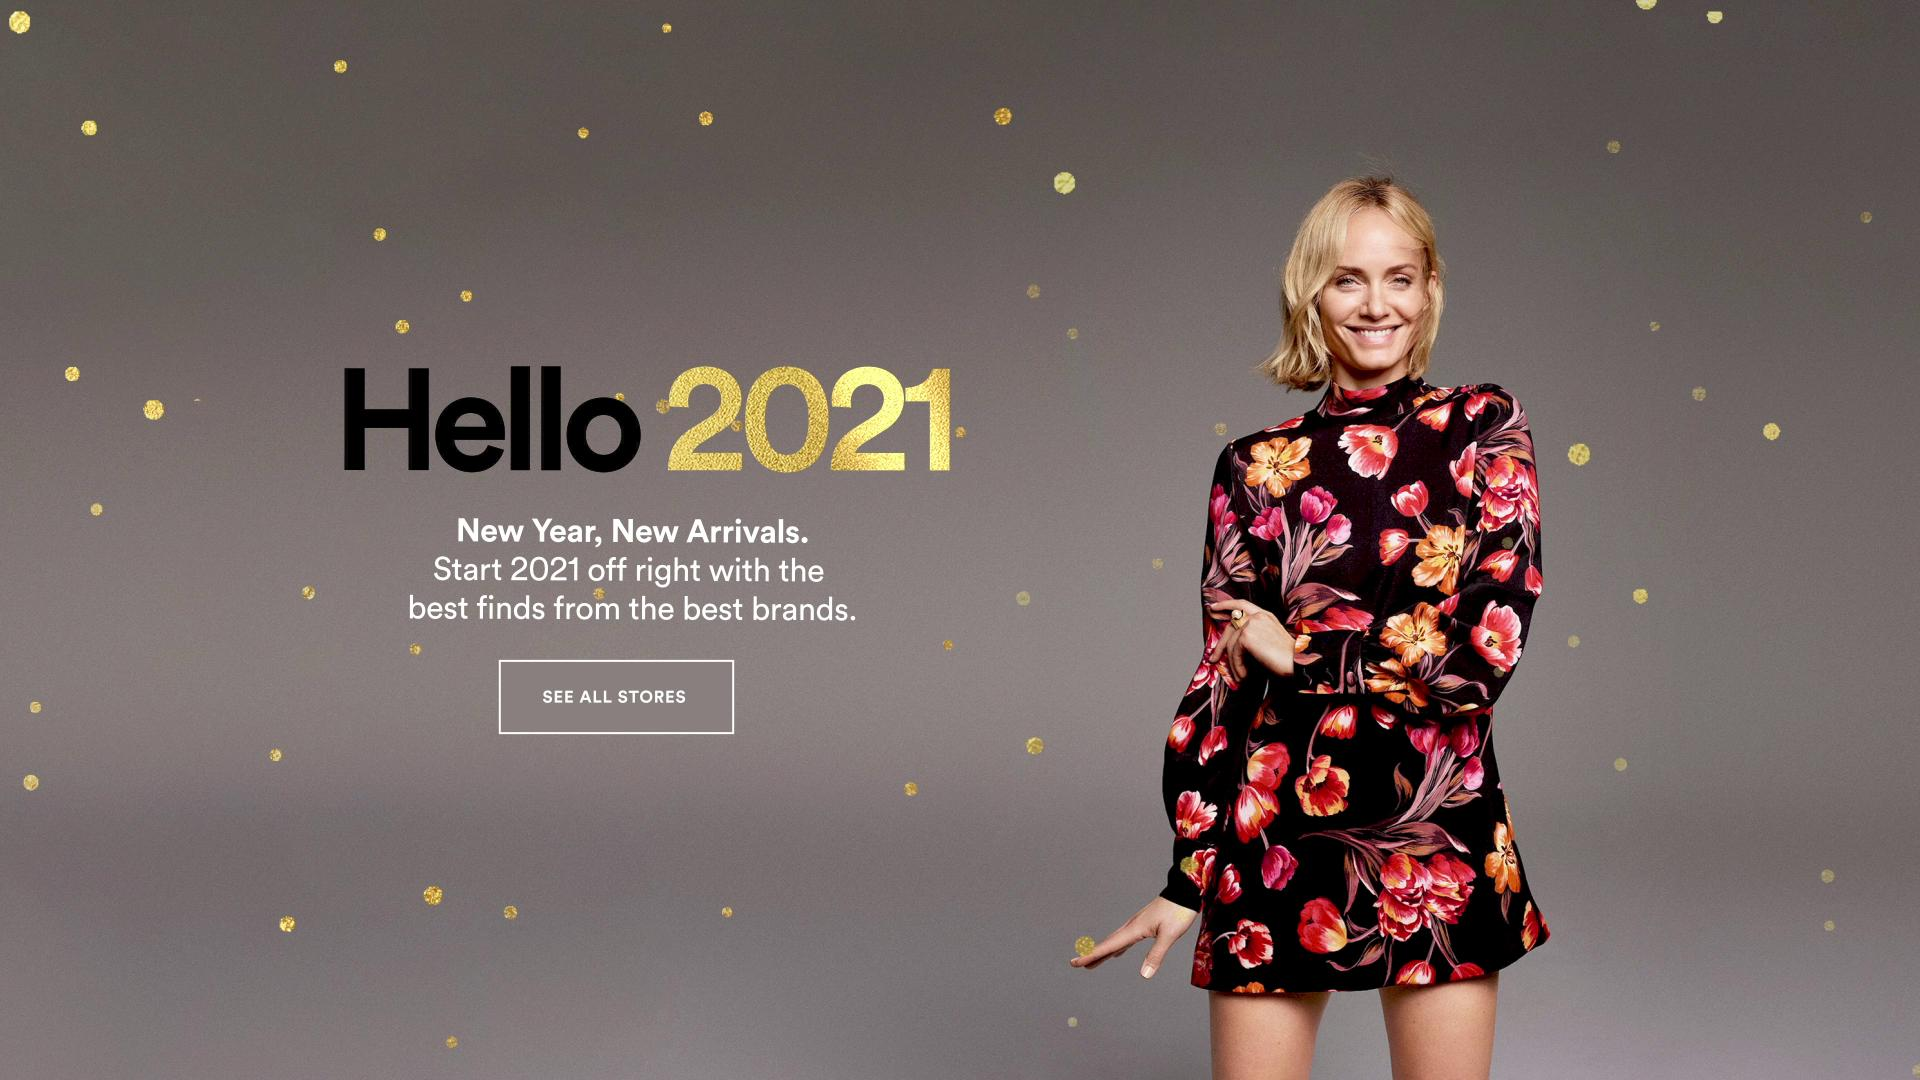 lux expression - hero - hello 2021 - Copy image